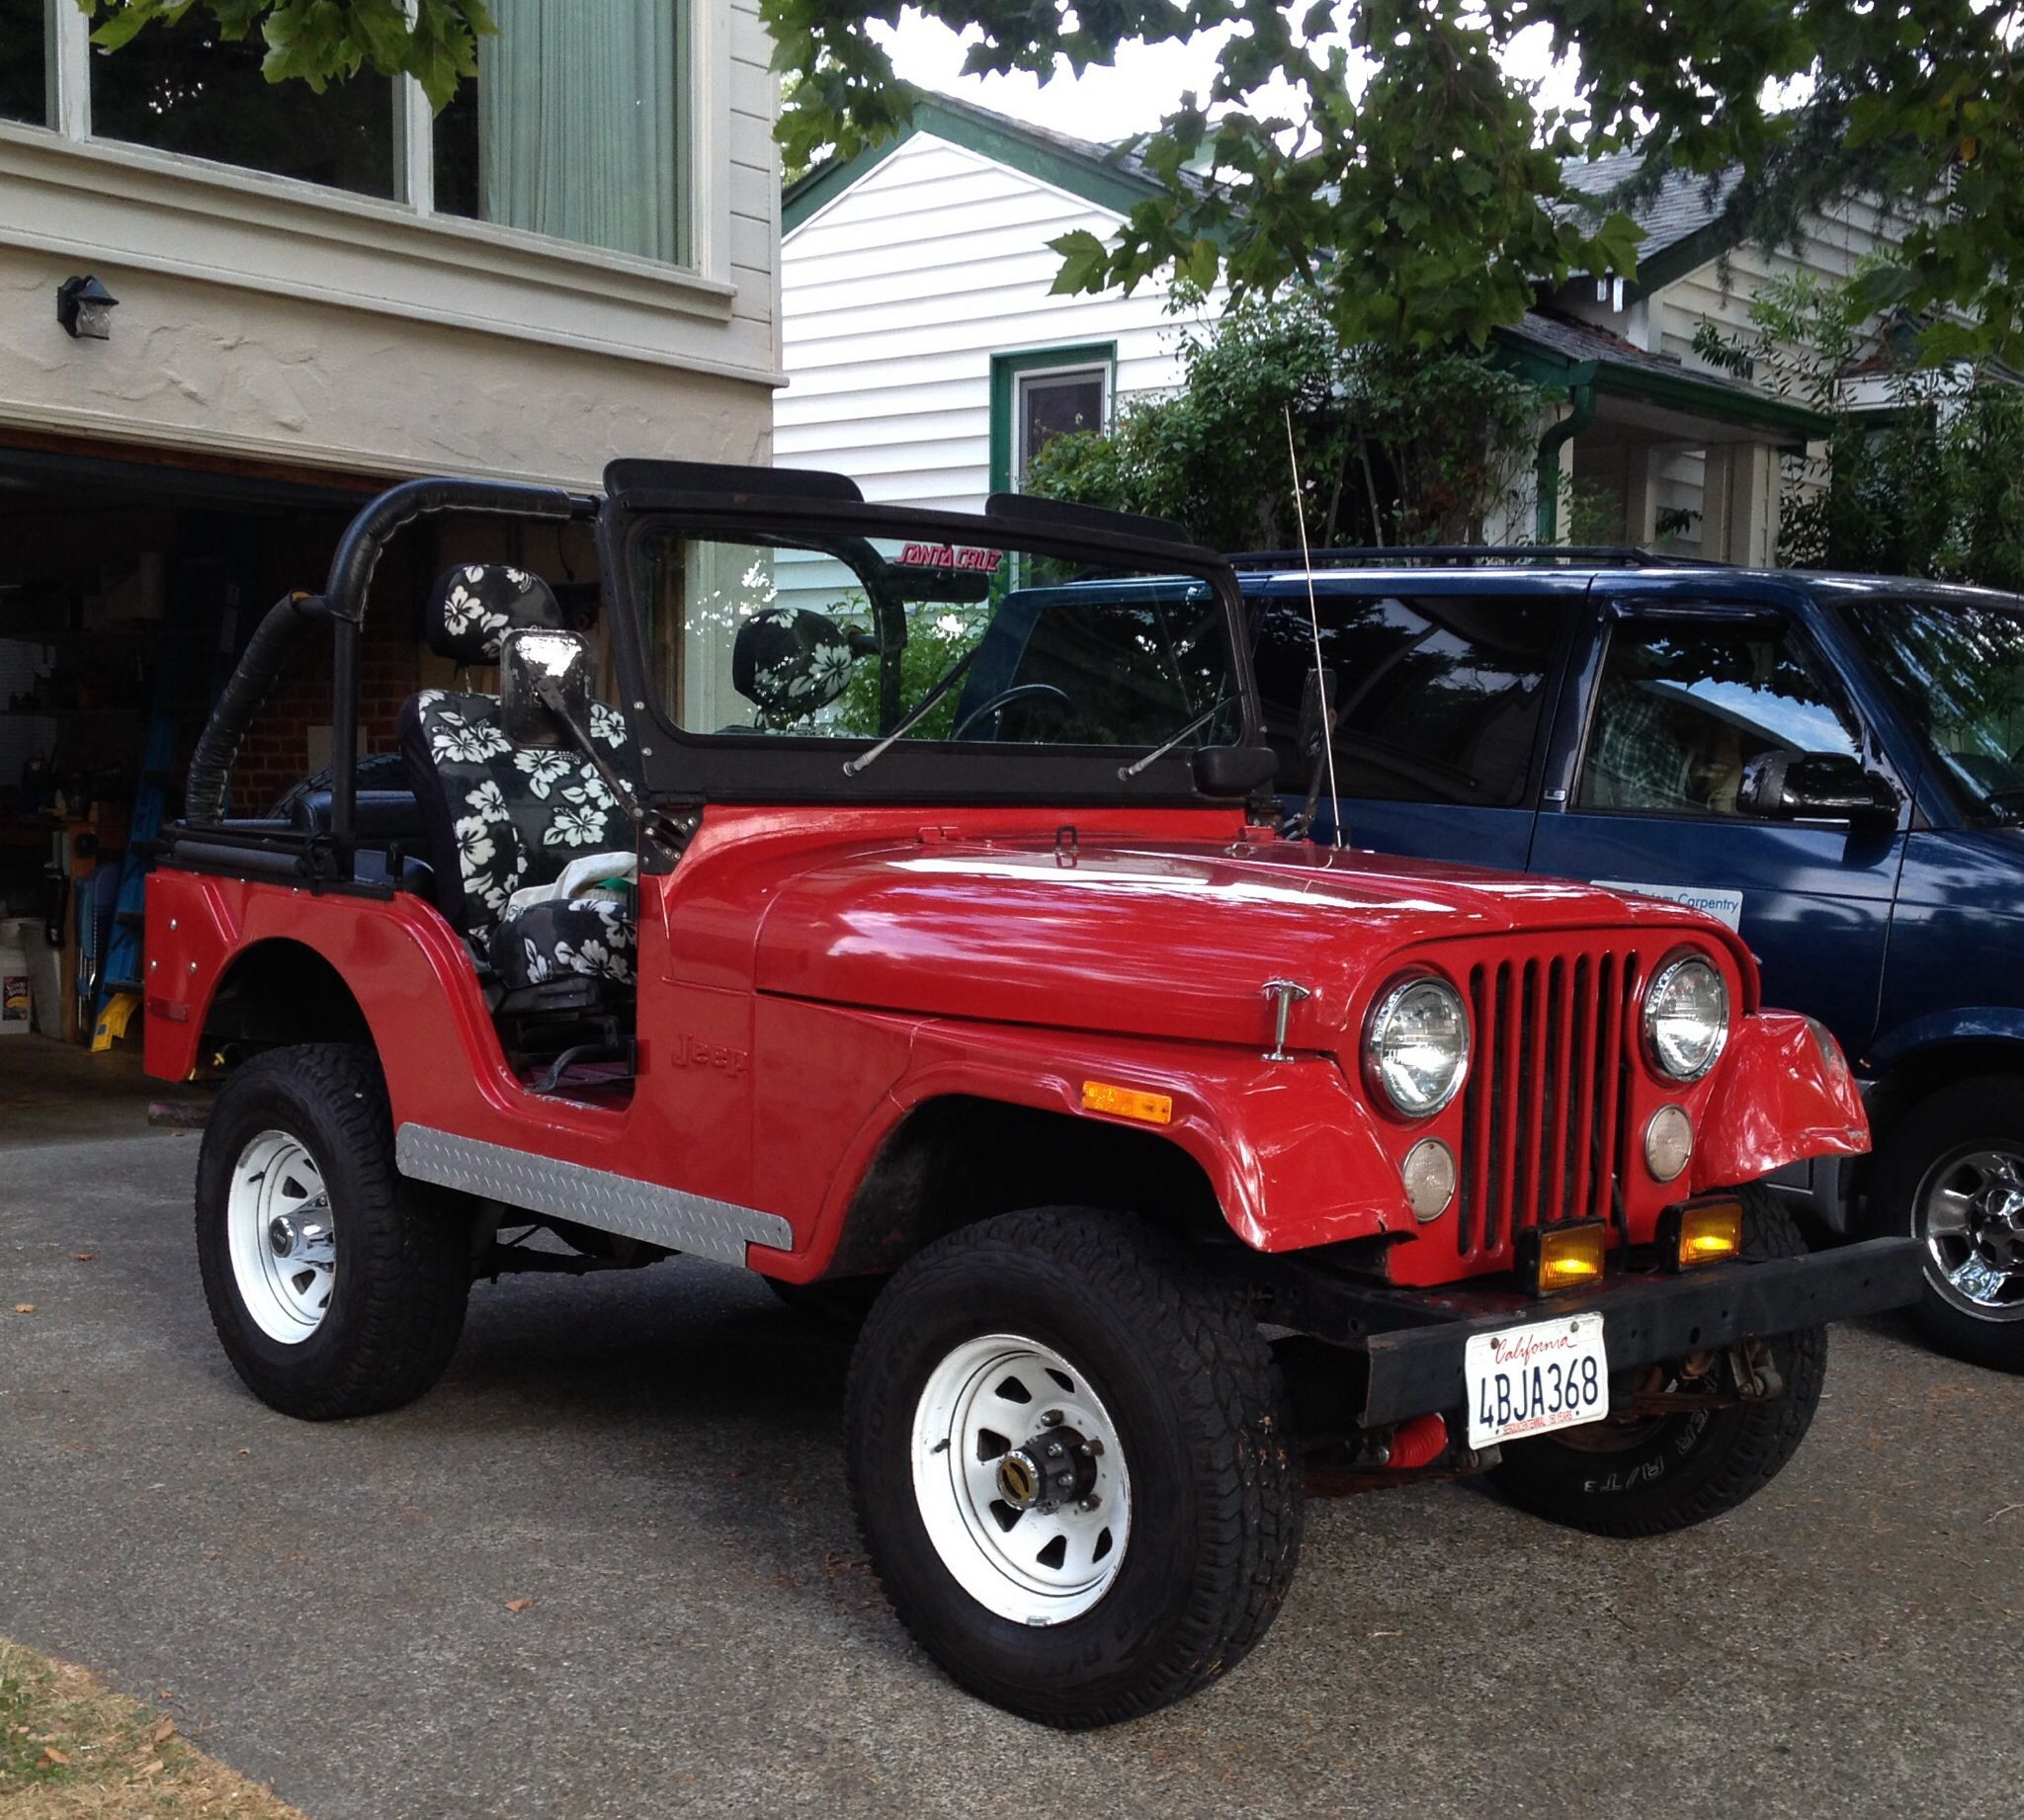 New Old Stock Cj Wheels On My Old Jeep Cars Pinterest Jeeps